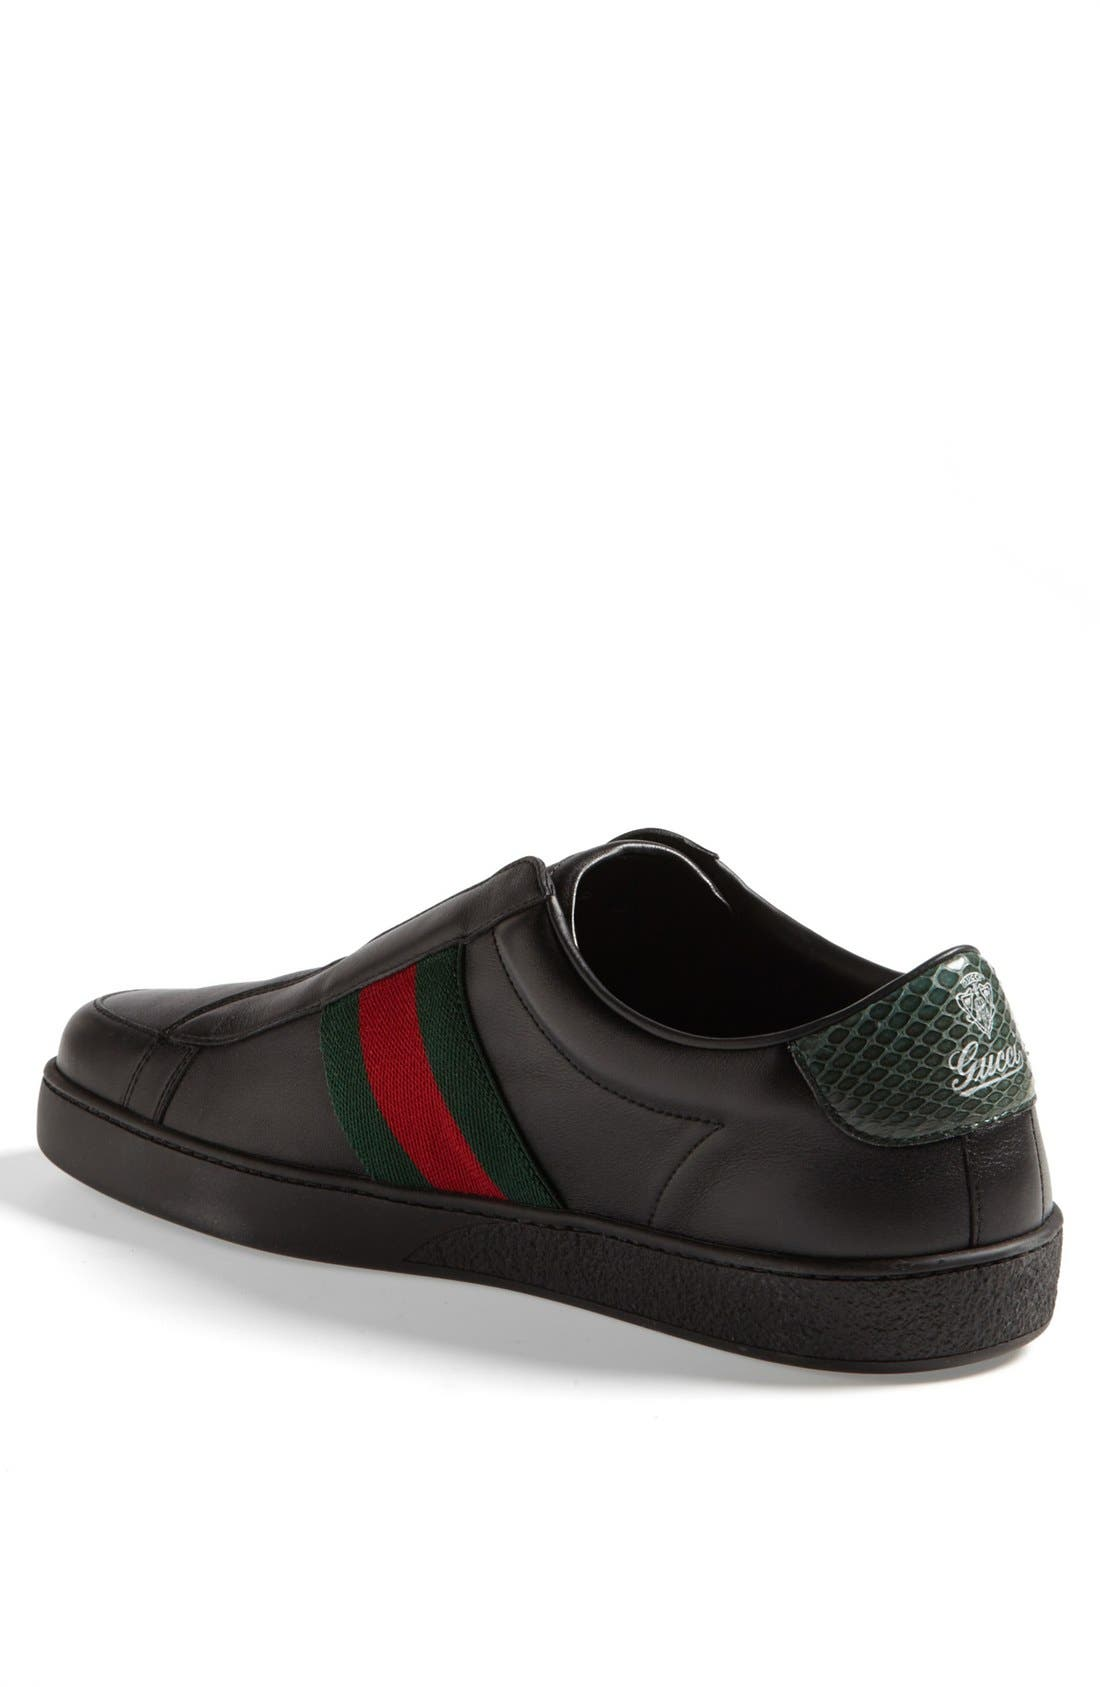 Alternate Image 2  - Gucci 'Brooklyn' Slip-On